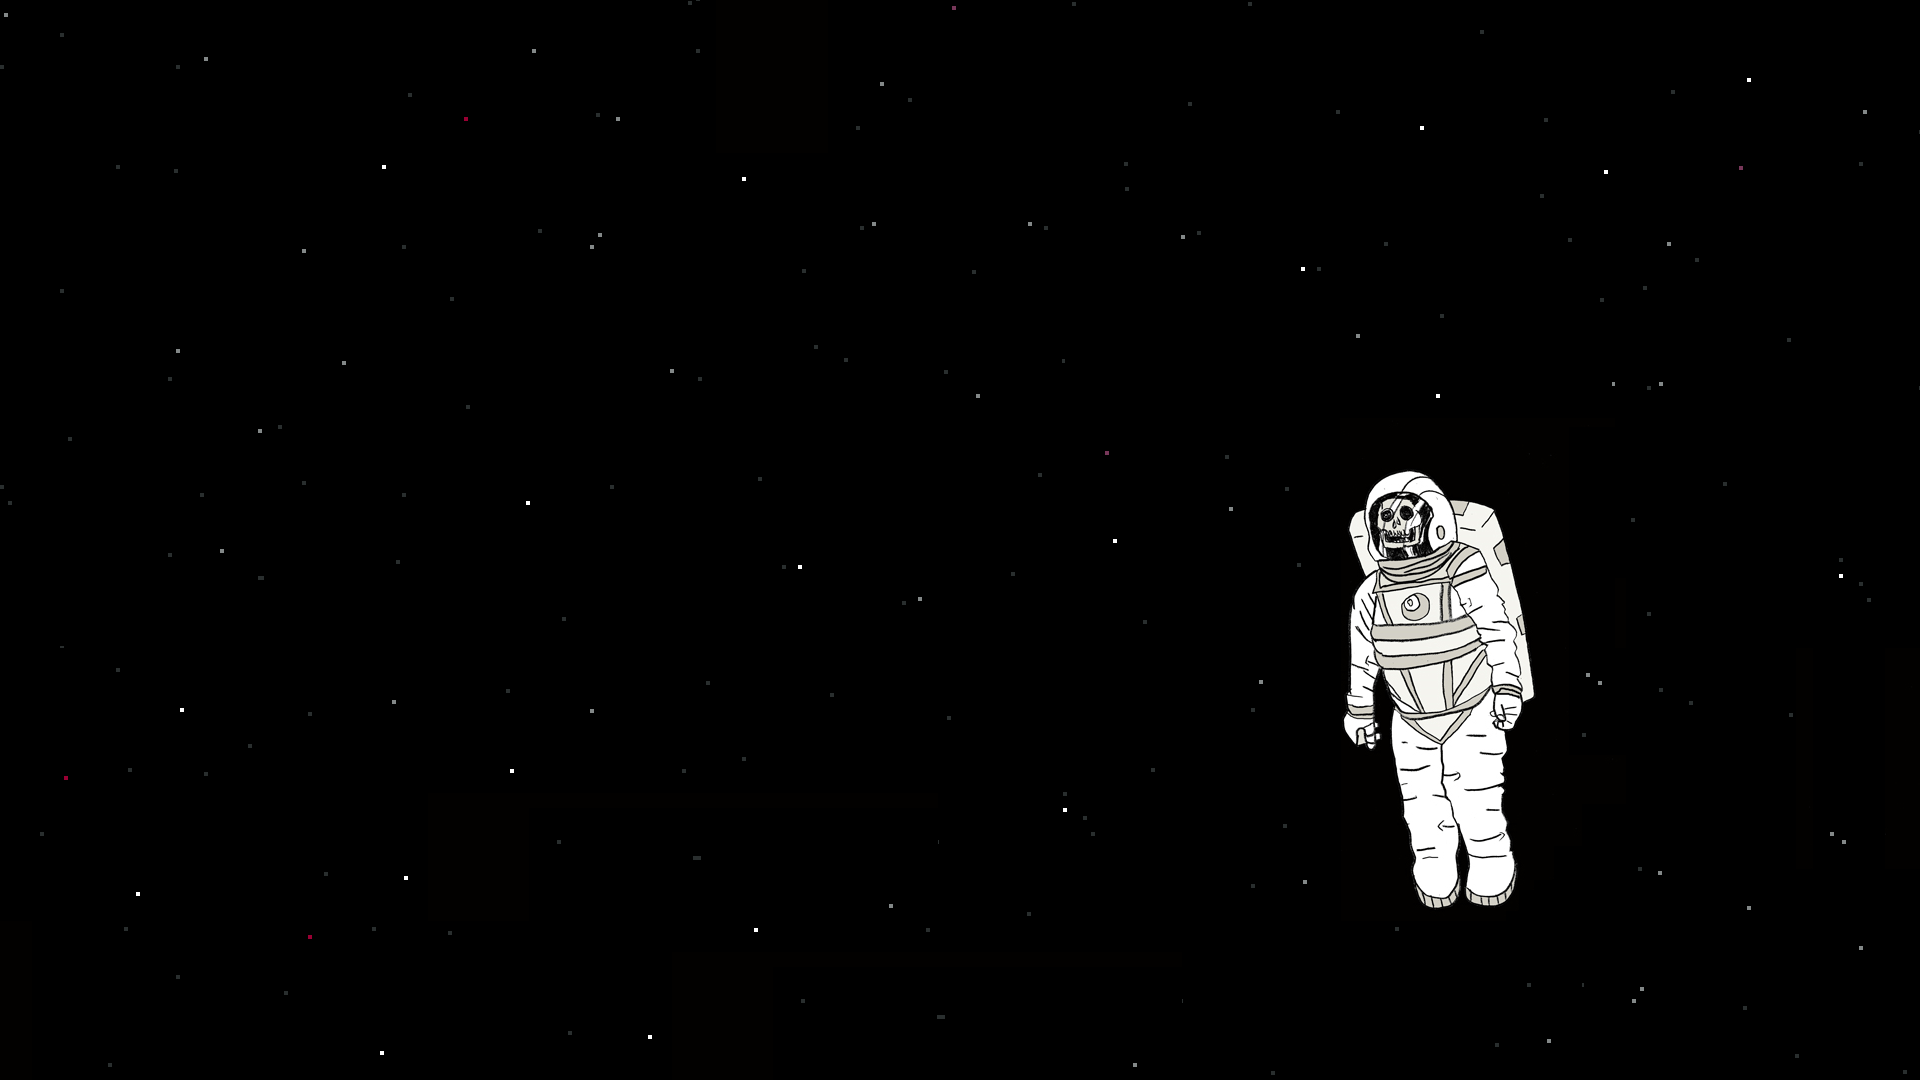 astronaut in space tumblr wallpaper - photo #16